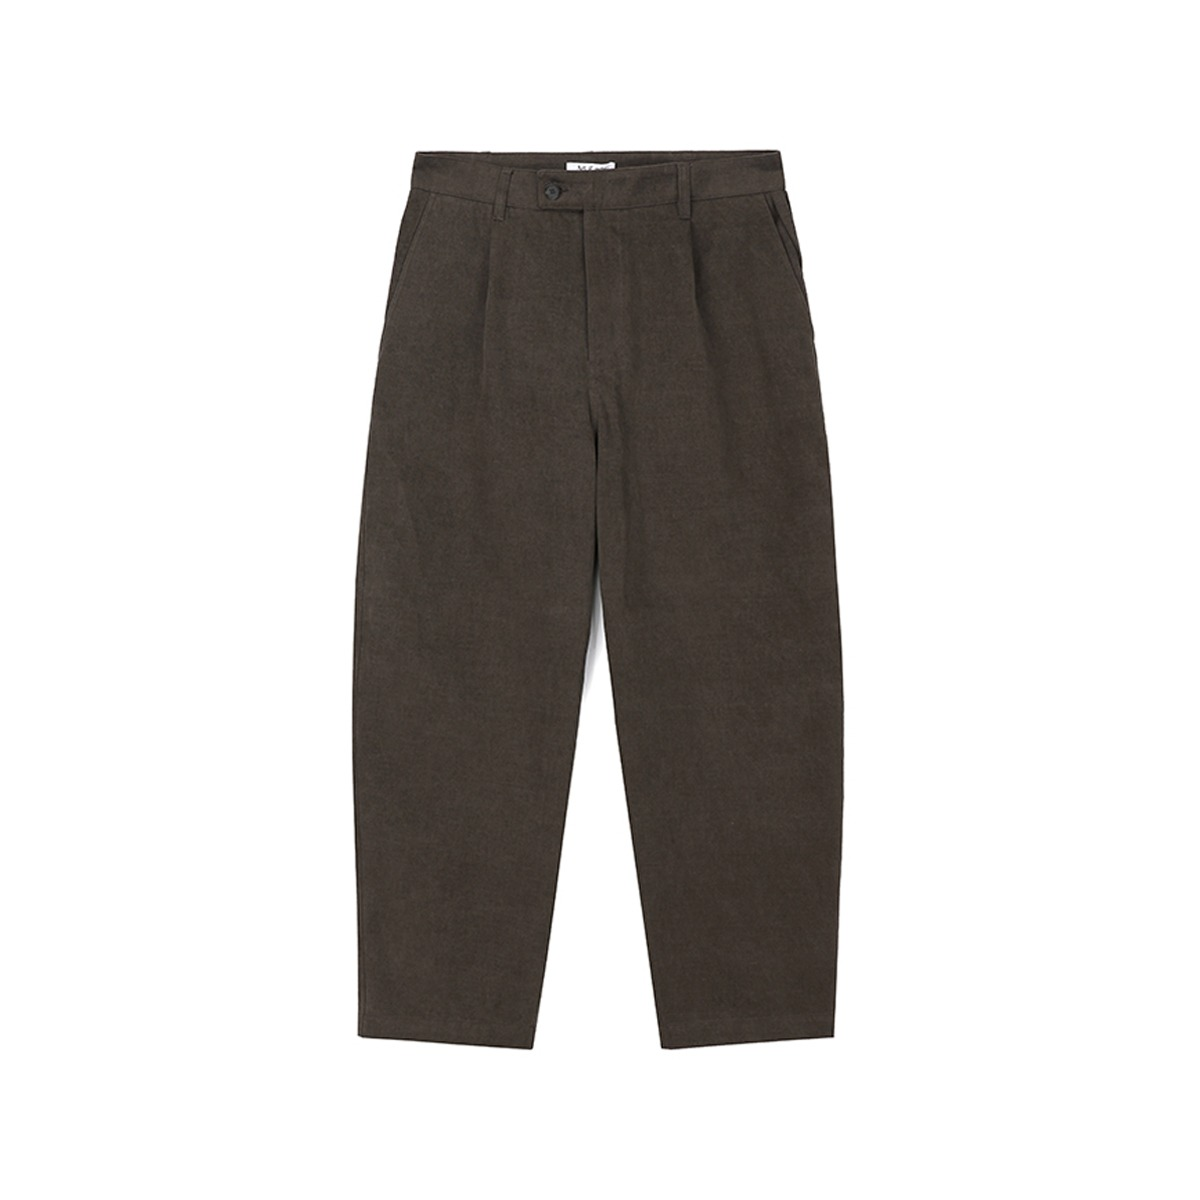 [ART IF ACTS] ONE TUCK CURVE PANT 'BROWN'